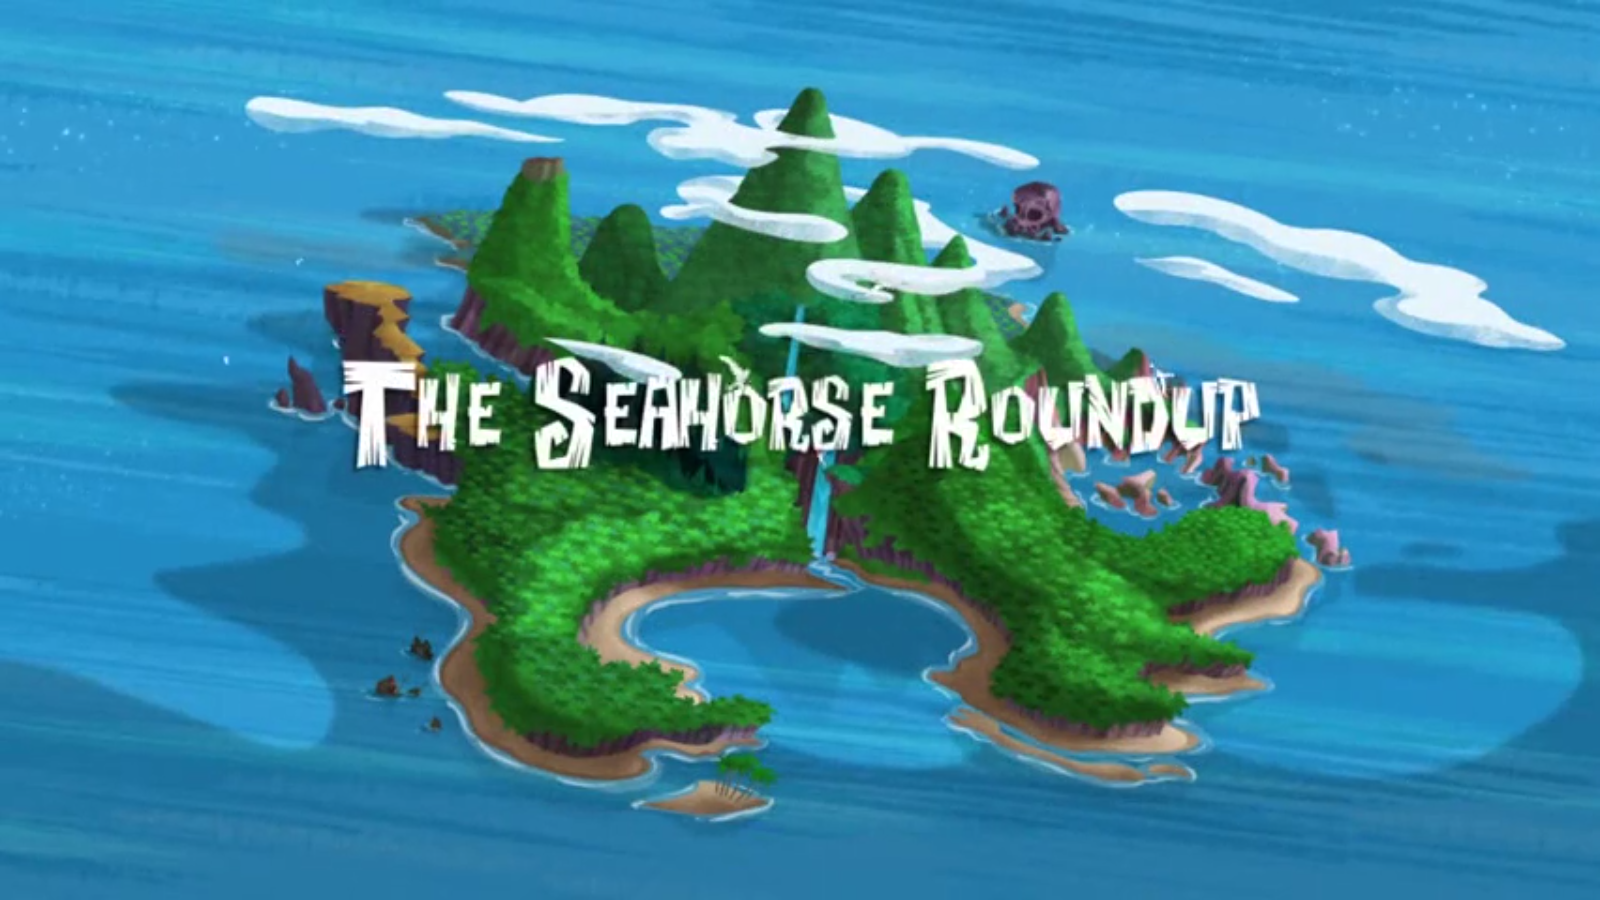 File:The Seahorse Roundup title card.png